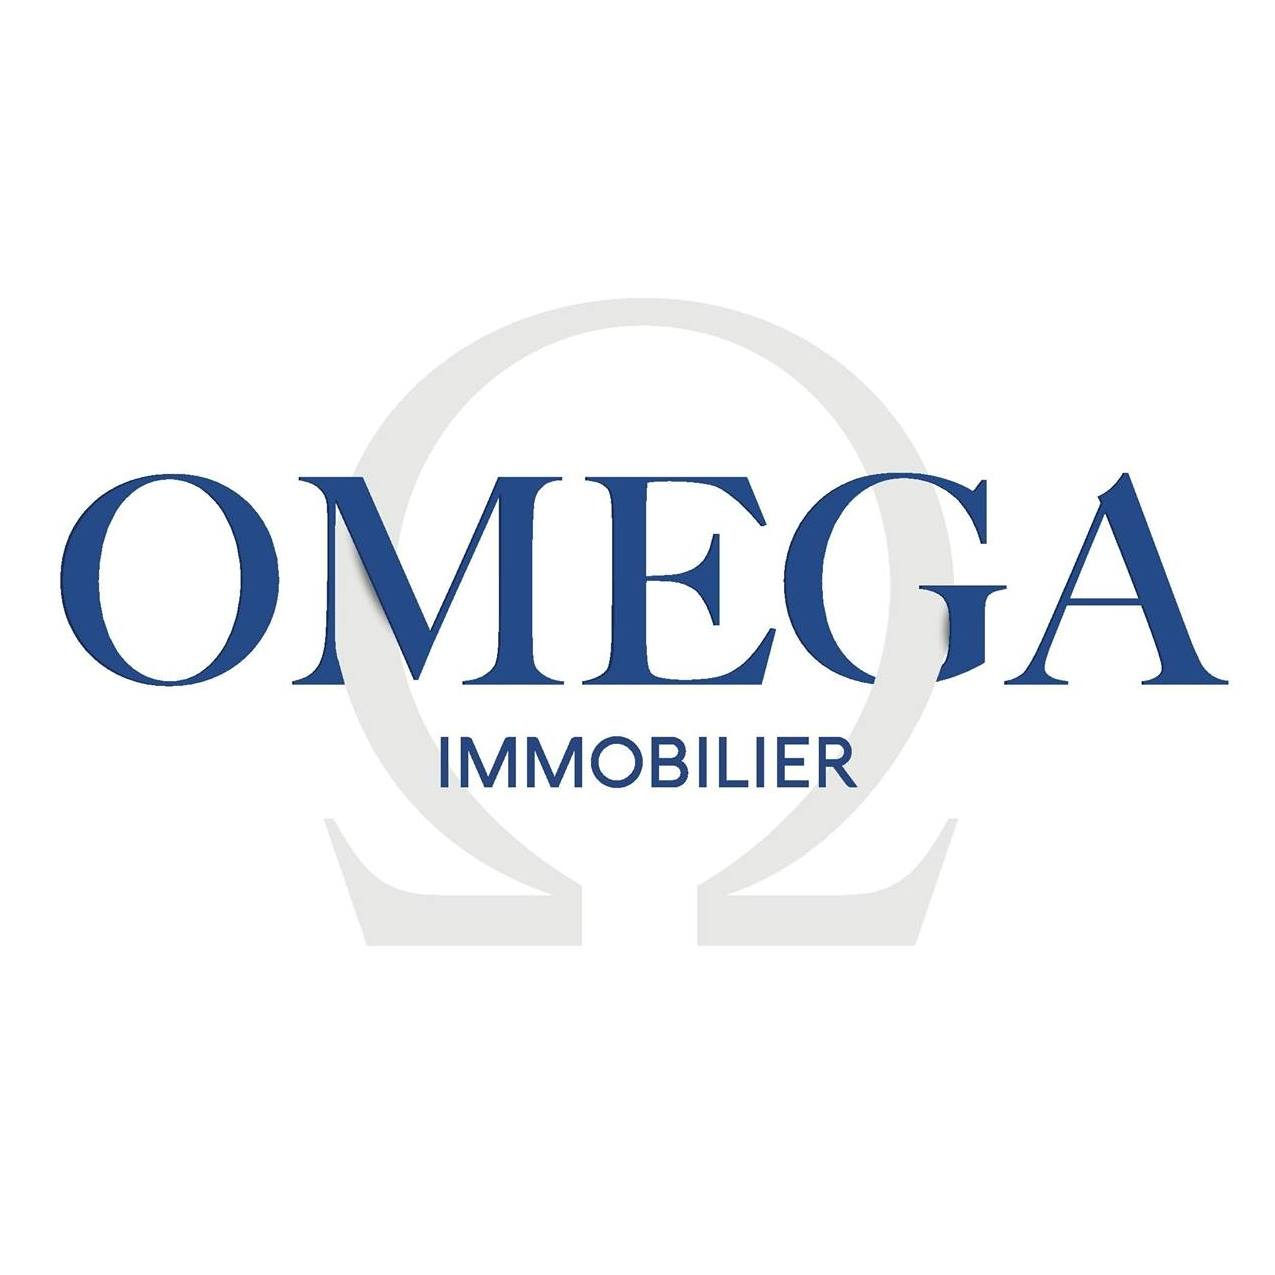 Omega Immobilier